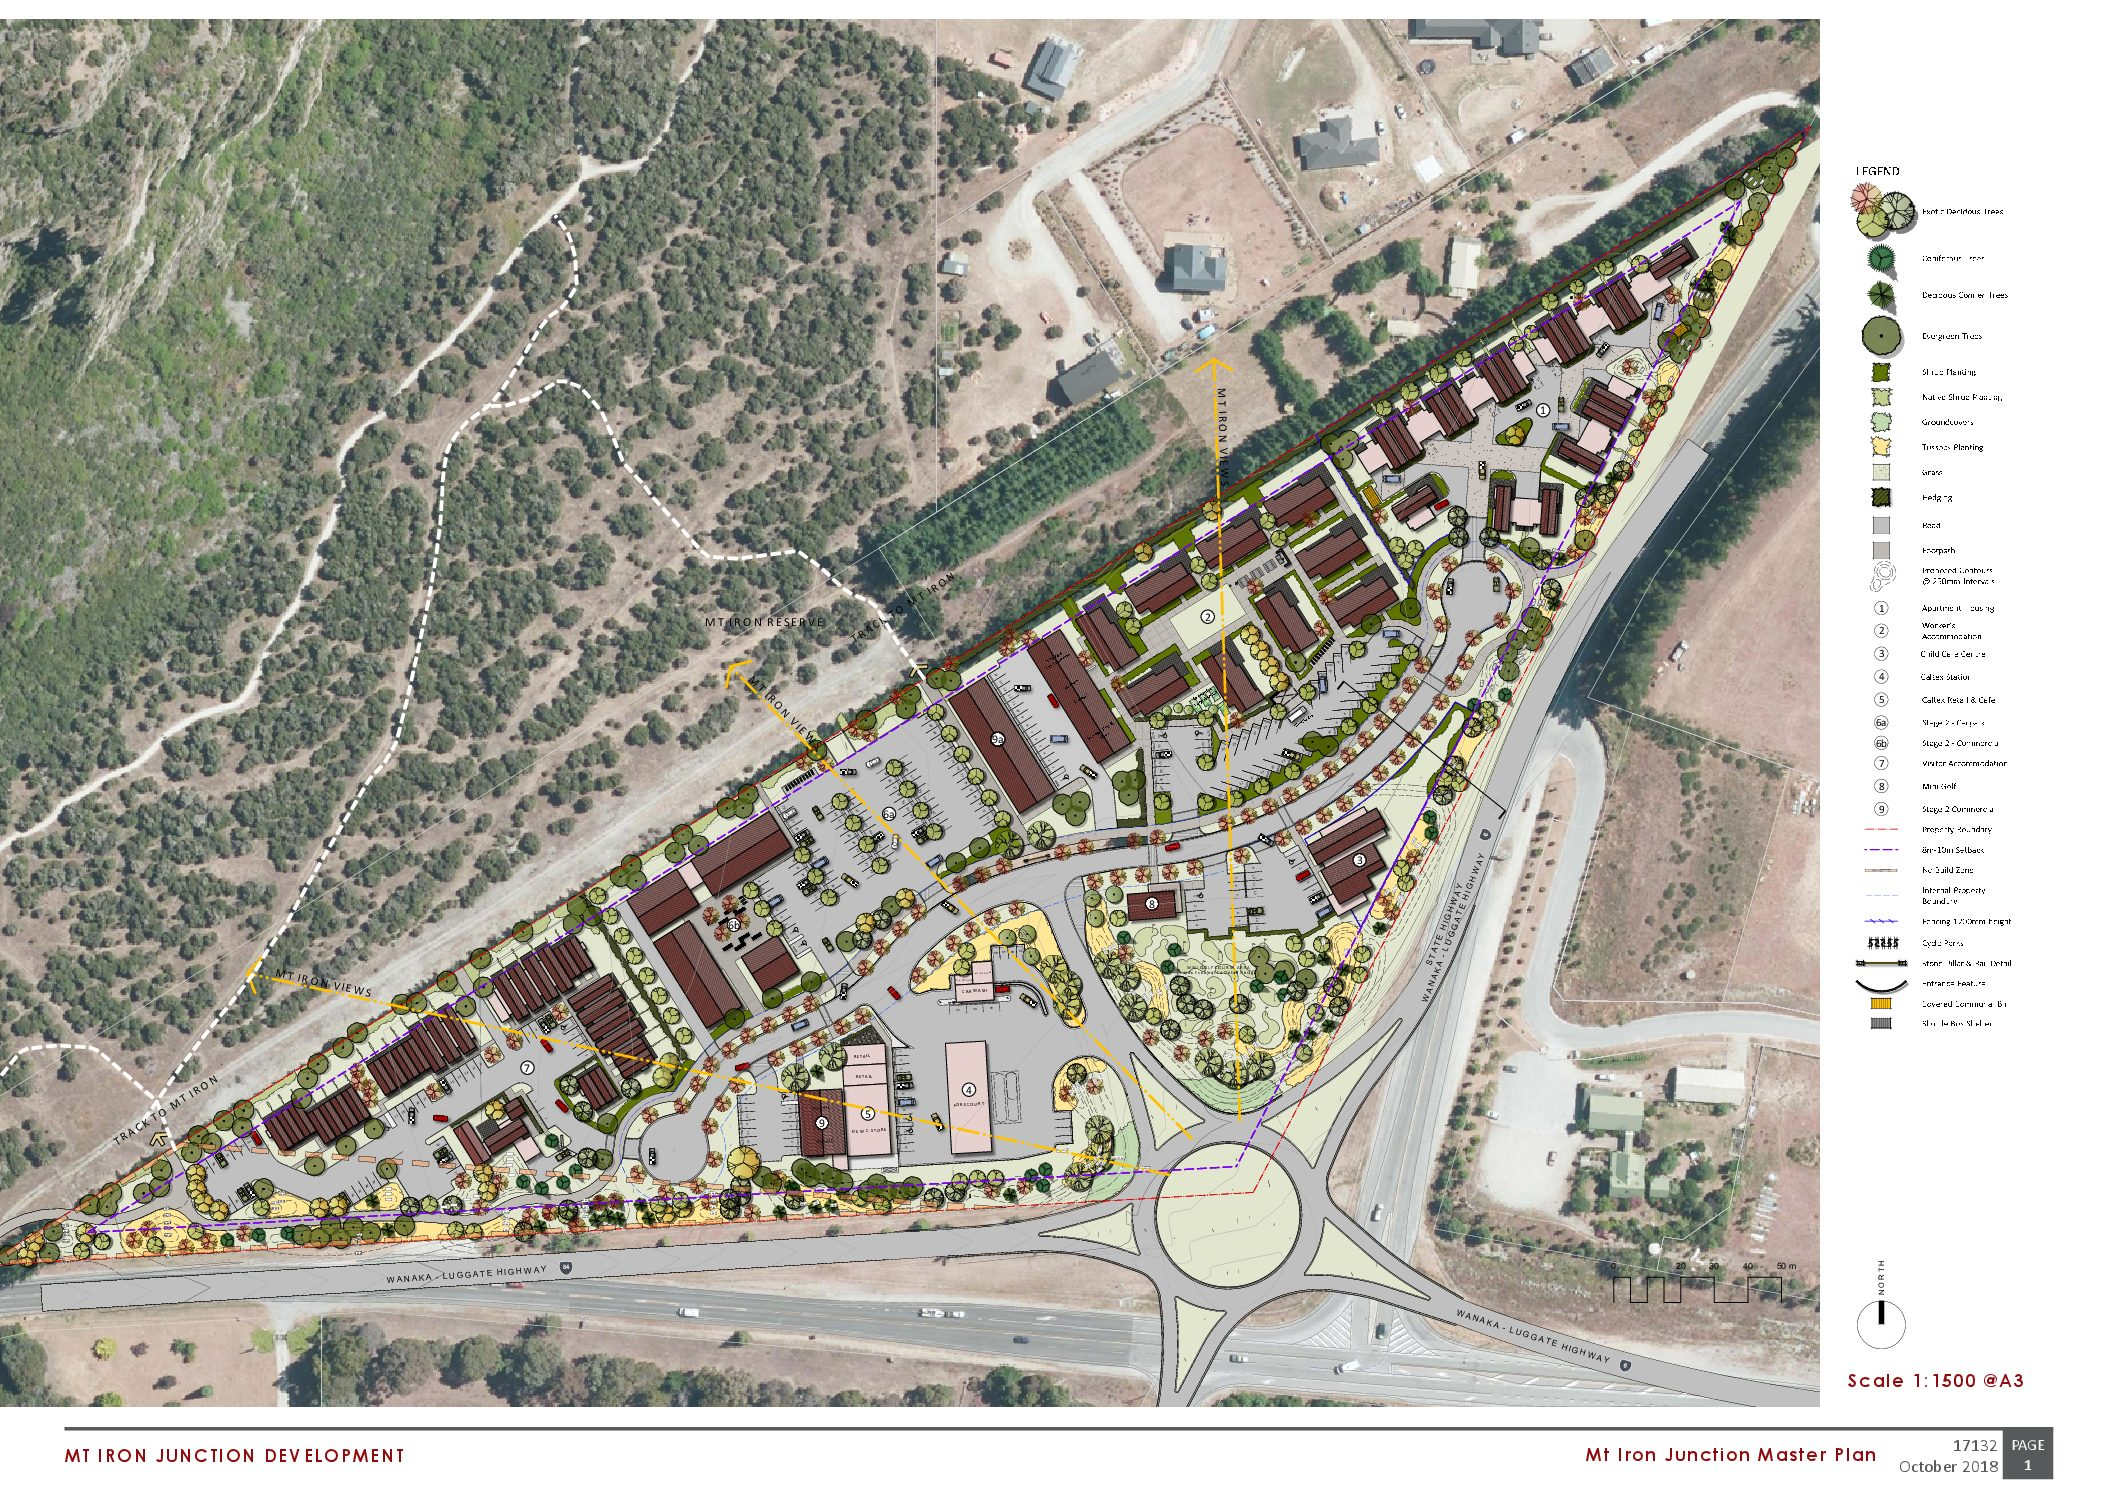 Wanaka's Mt Iron Junction development provides solution to town's growth issues